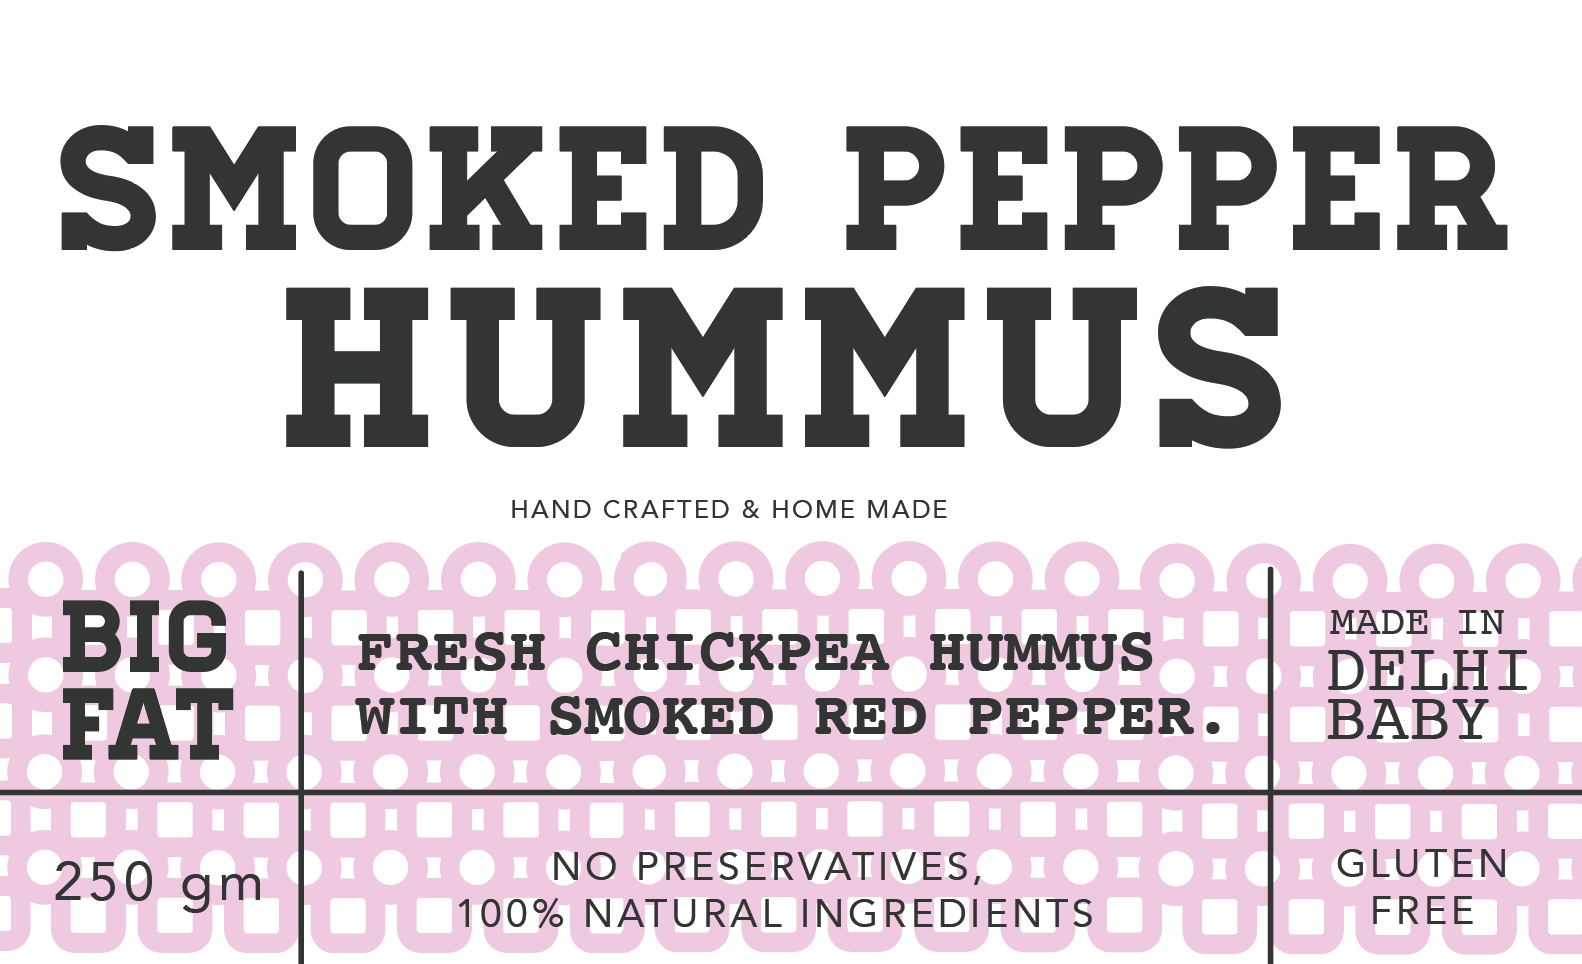 Smoked pepper hummus 250g